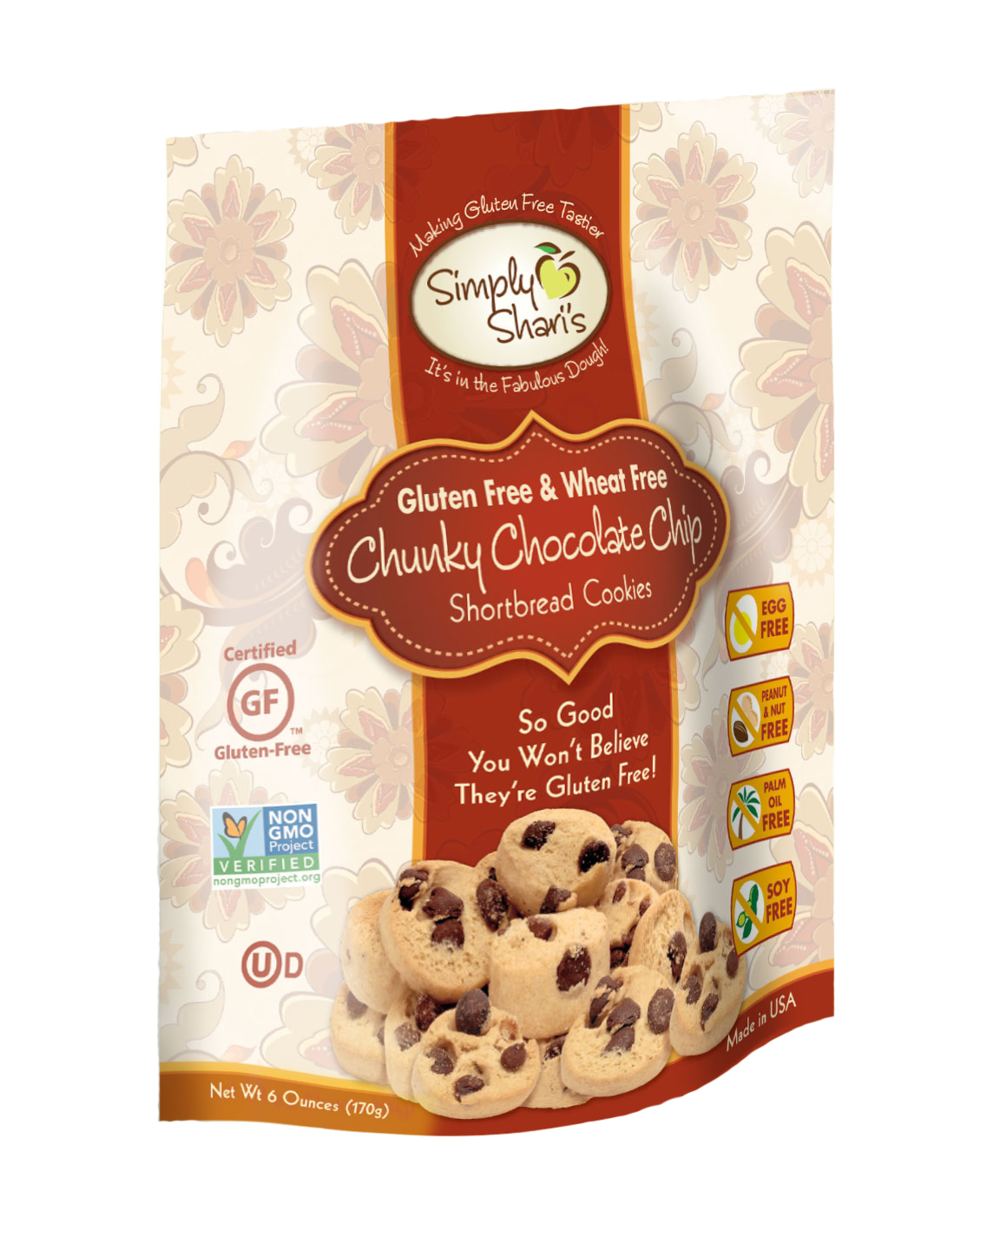 Simply Shari's Gluten Free Chunky Chocolate Chip Shortbread Cookies